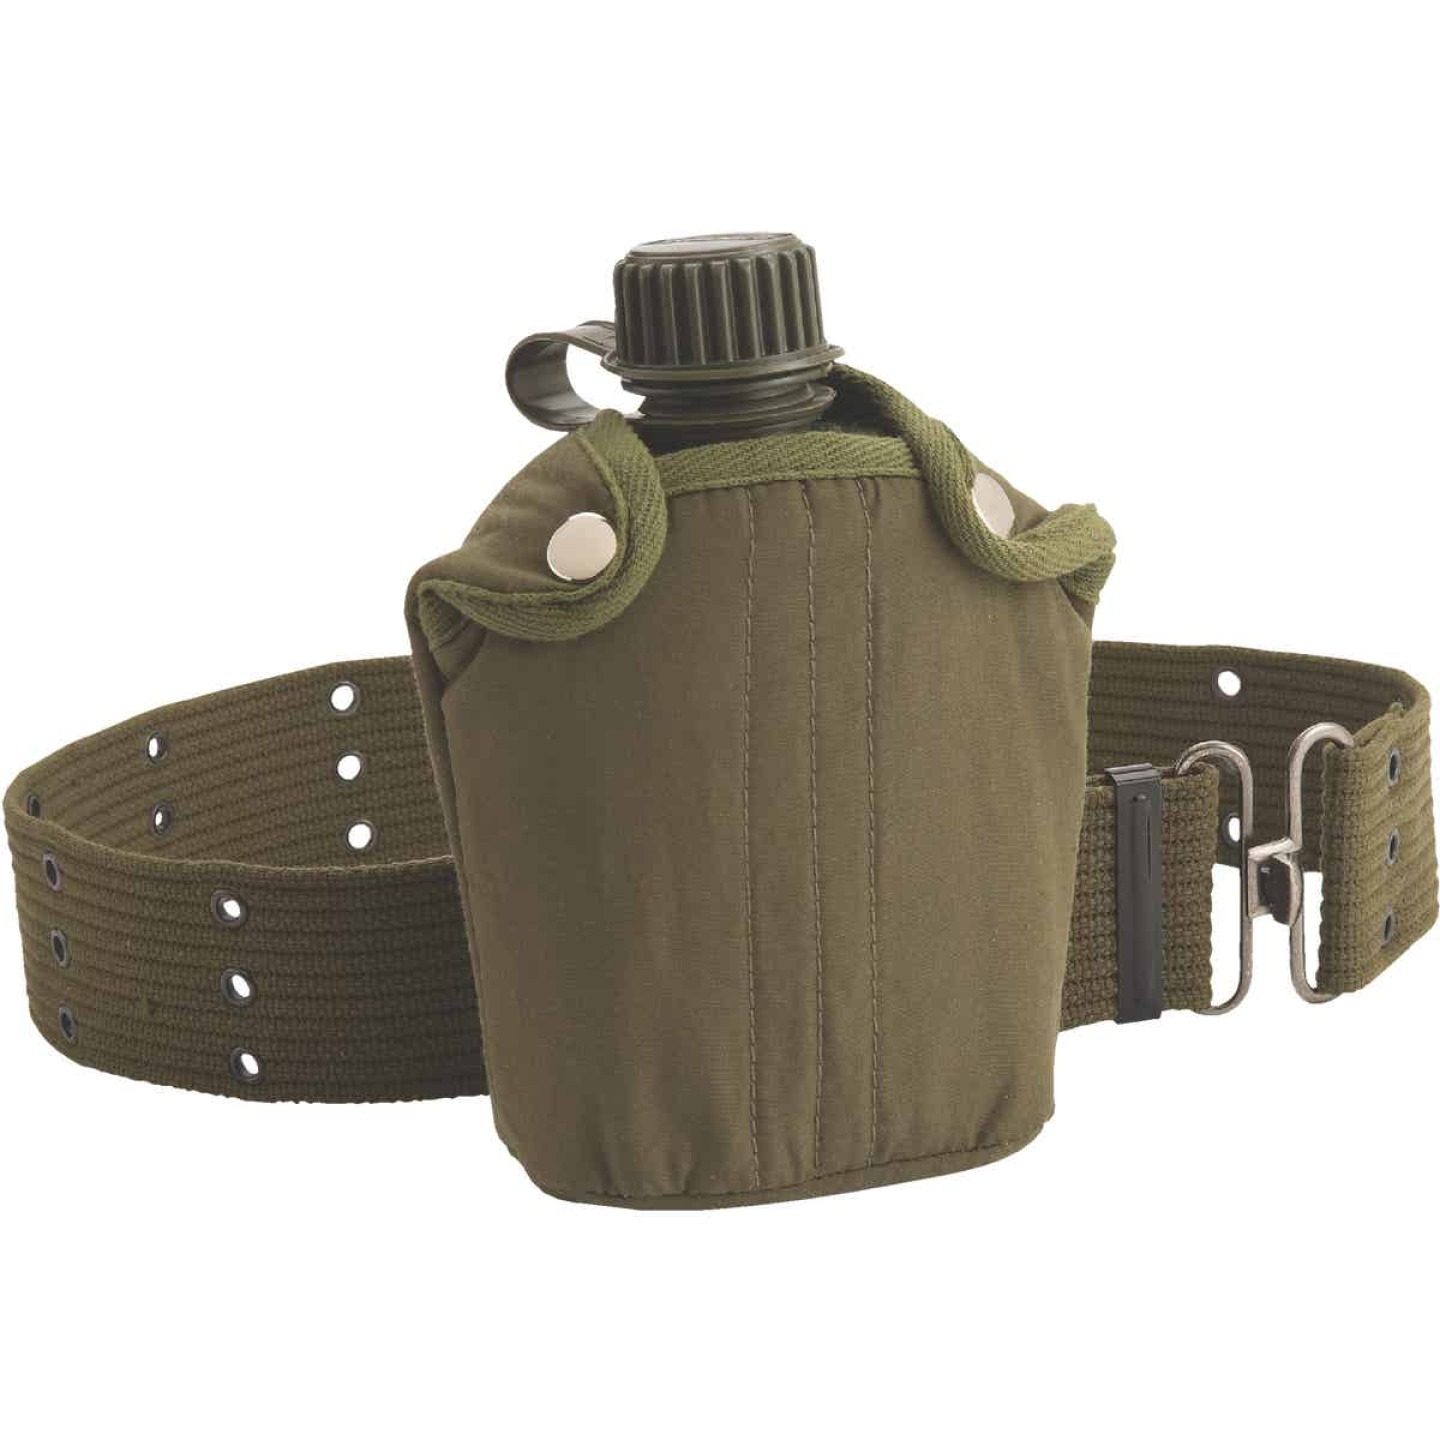 Coleman 28 Oz. Military Style Canteen Image 1